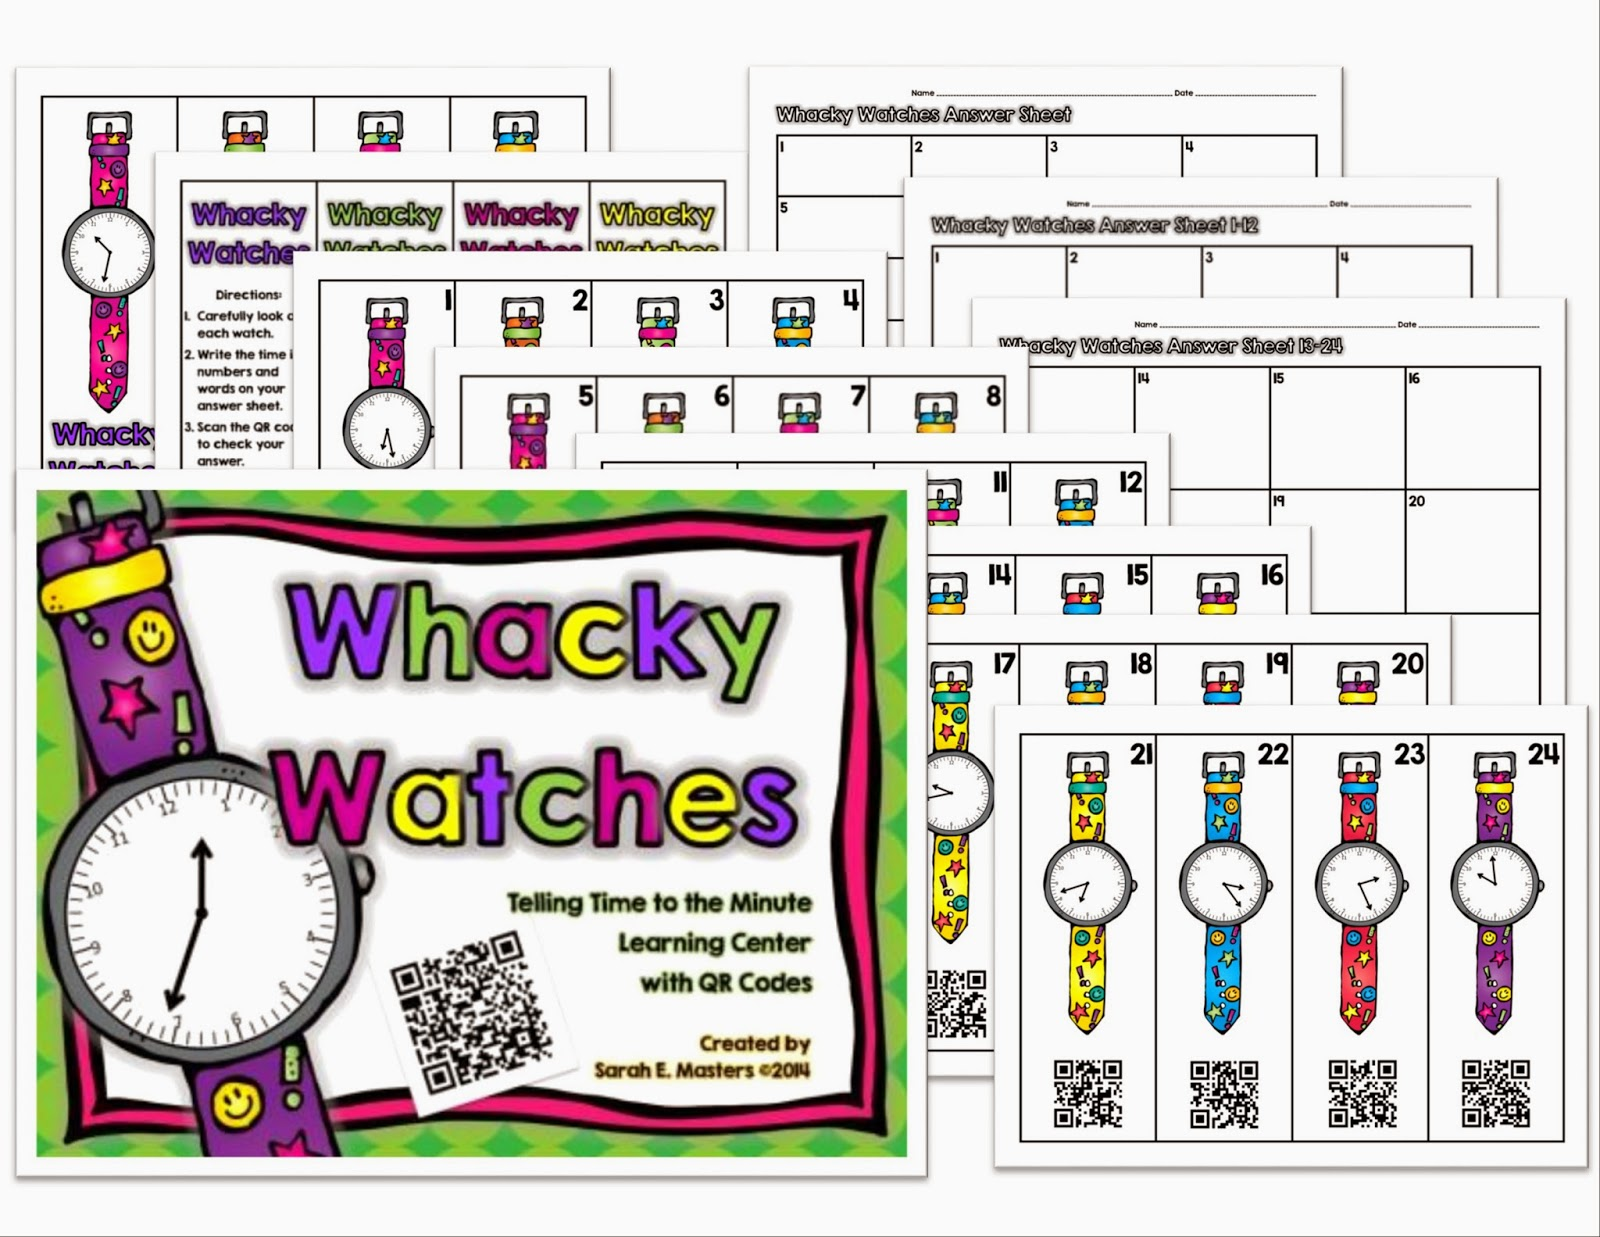 http://www.teacherspayteachers.com/Product/Whacky-Watches-Telling-Time-to-the-Minute-Math-Center-with-QR-Codes-1178951